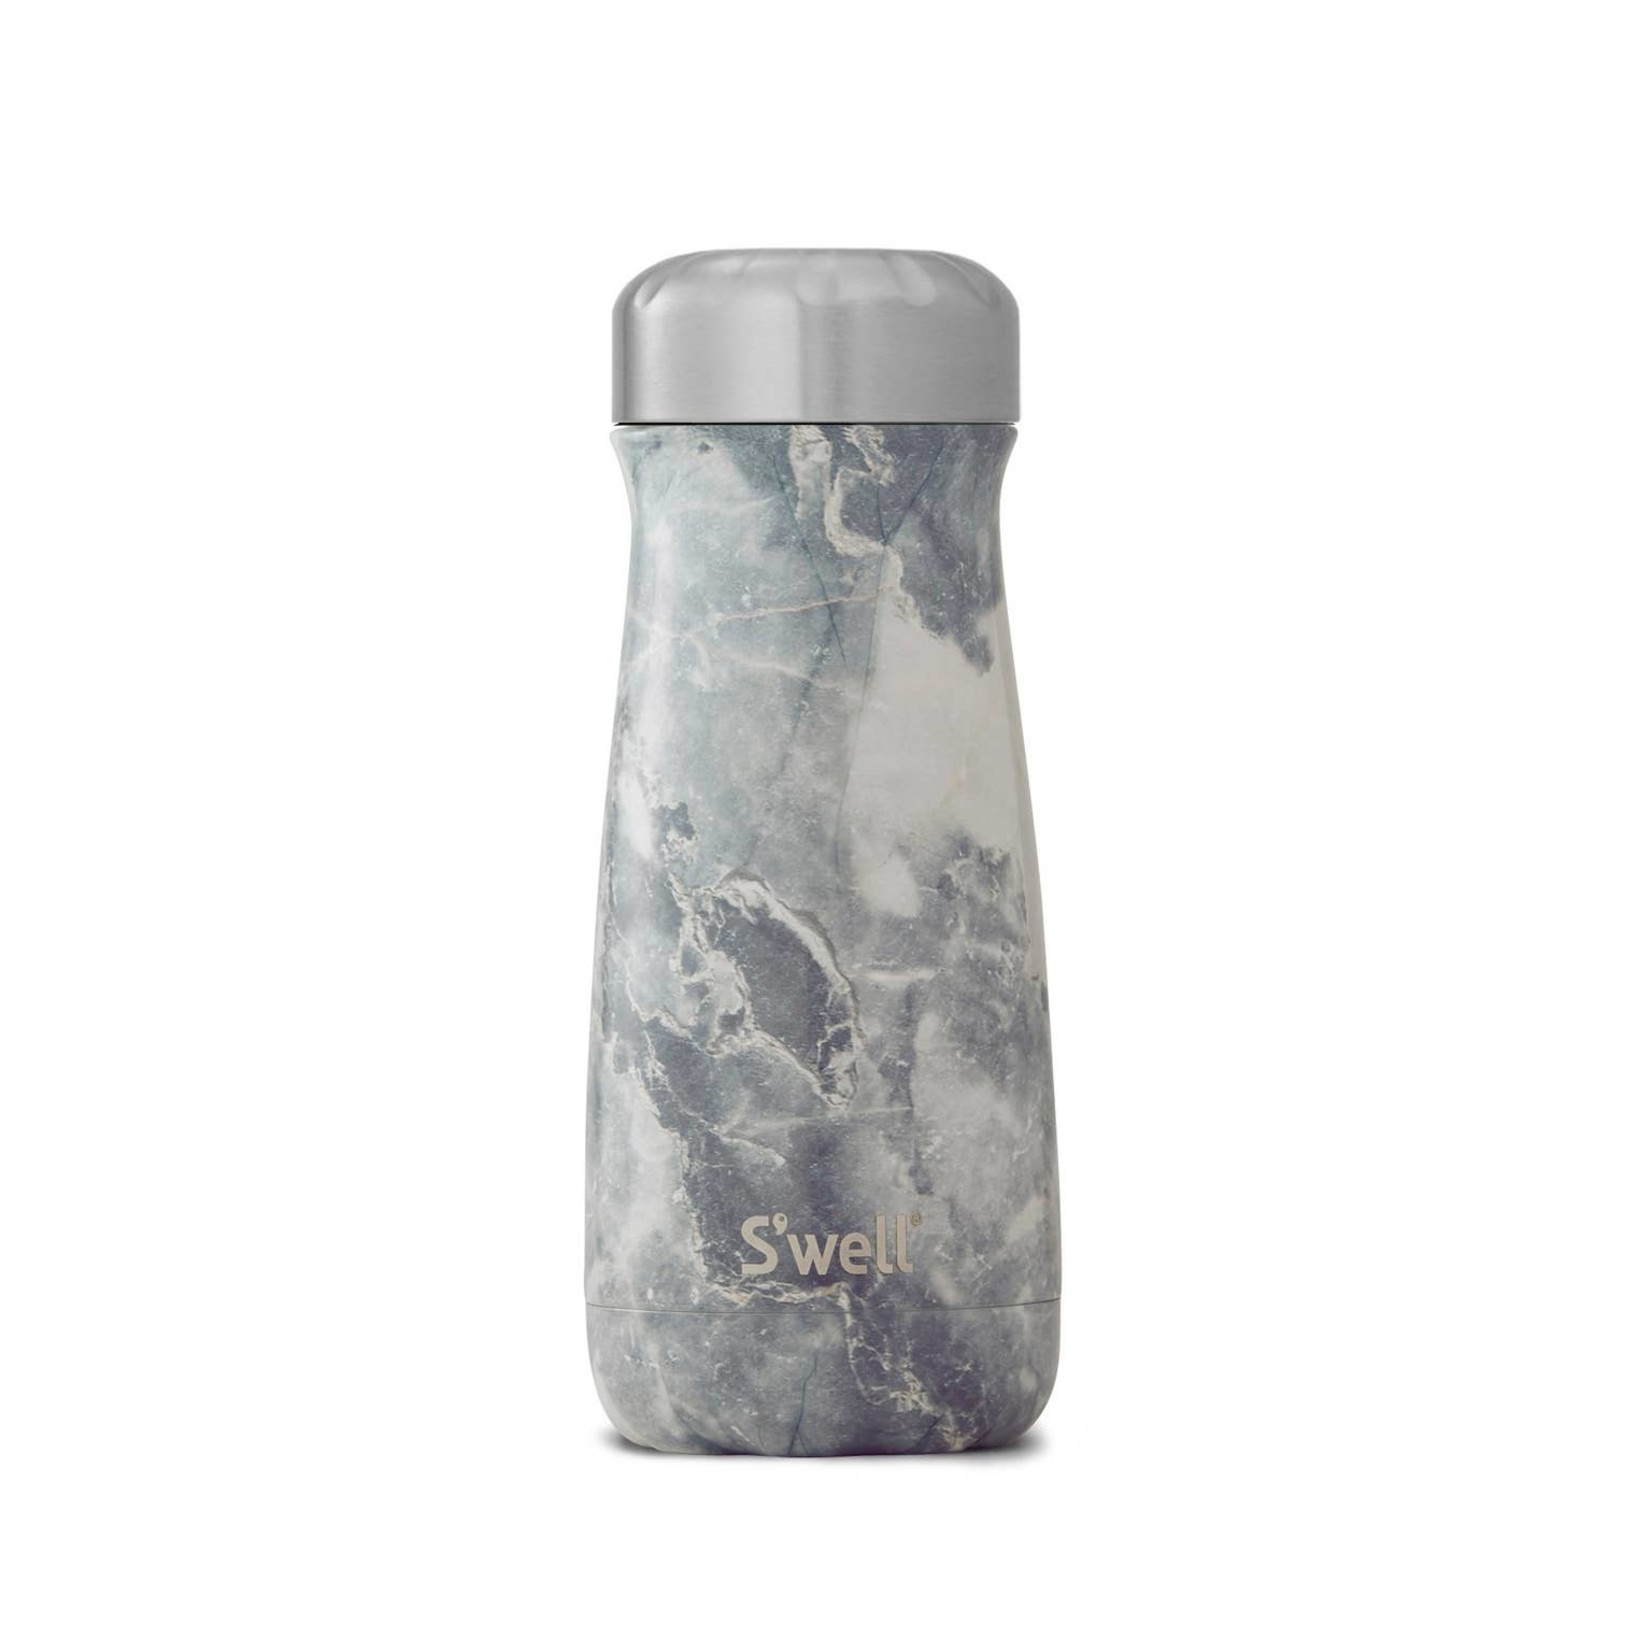 S'well S'well Bottle Traveler 16oz Marble Blue Granite